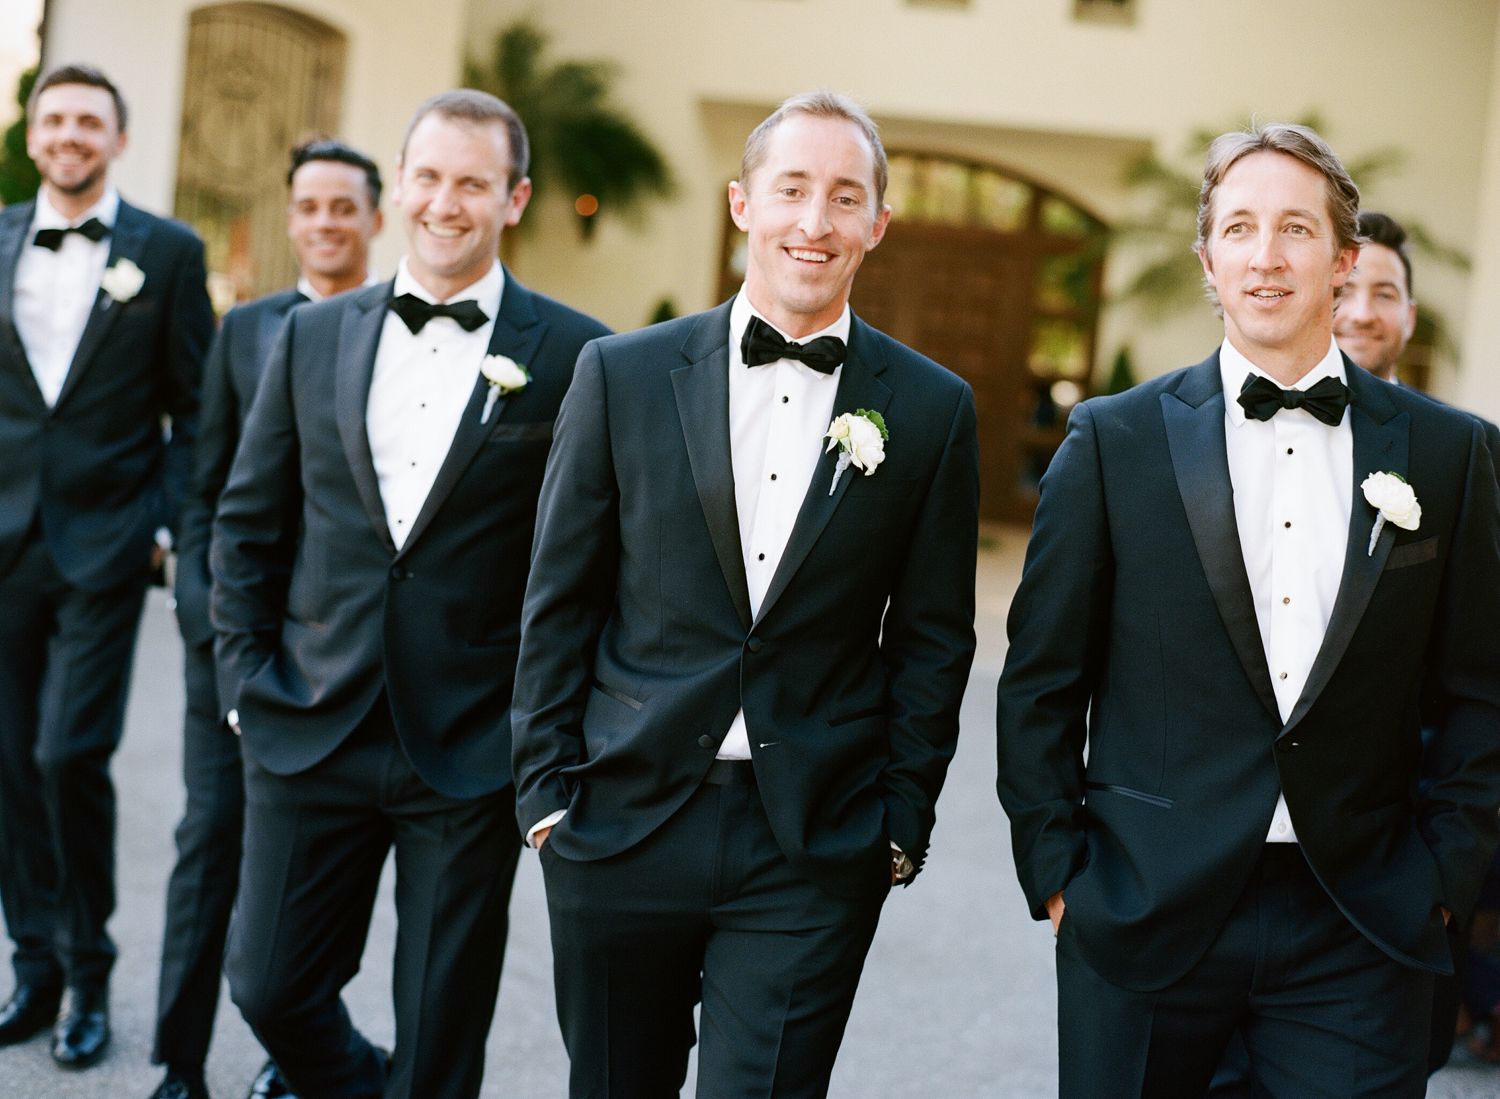 The groom walks toward the camera surrounded by his dapper groomsmen, dressed in black tuxedos; photo by Sylvie Gil